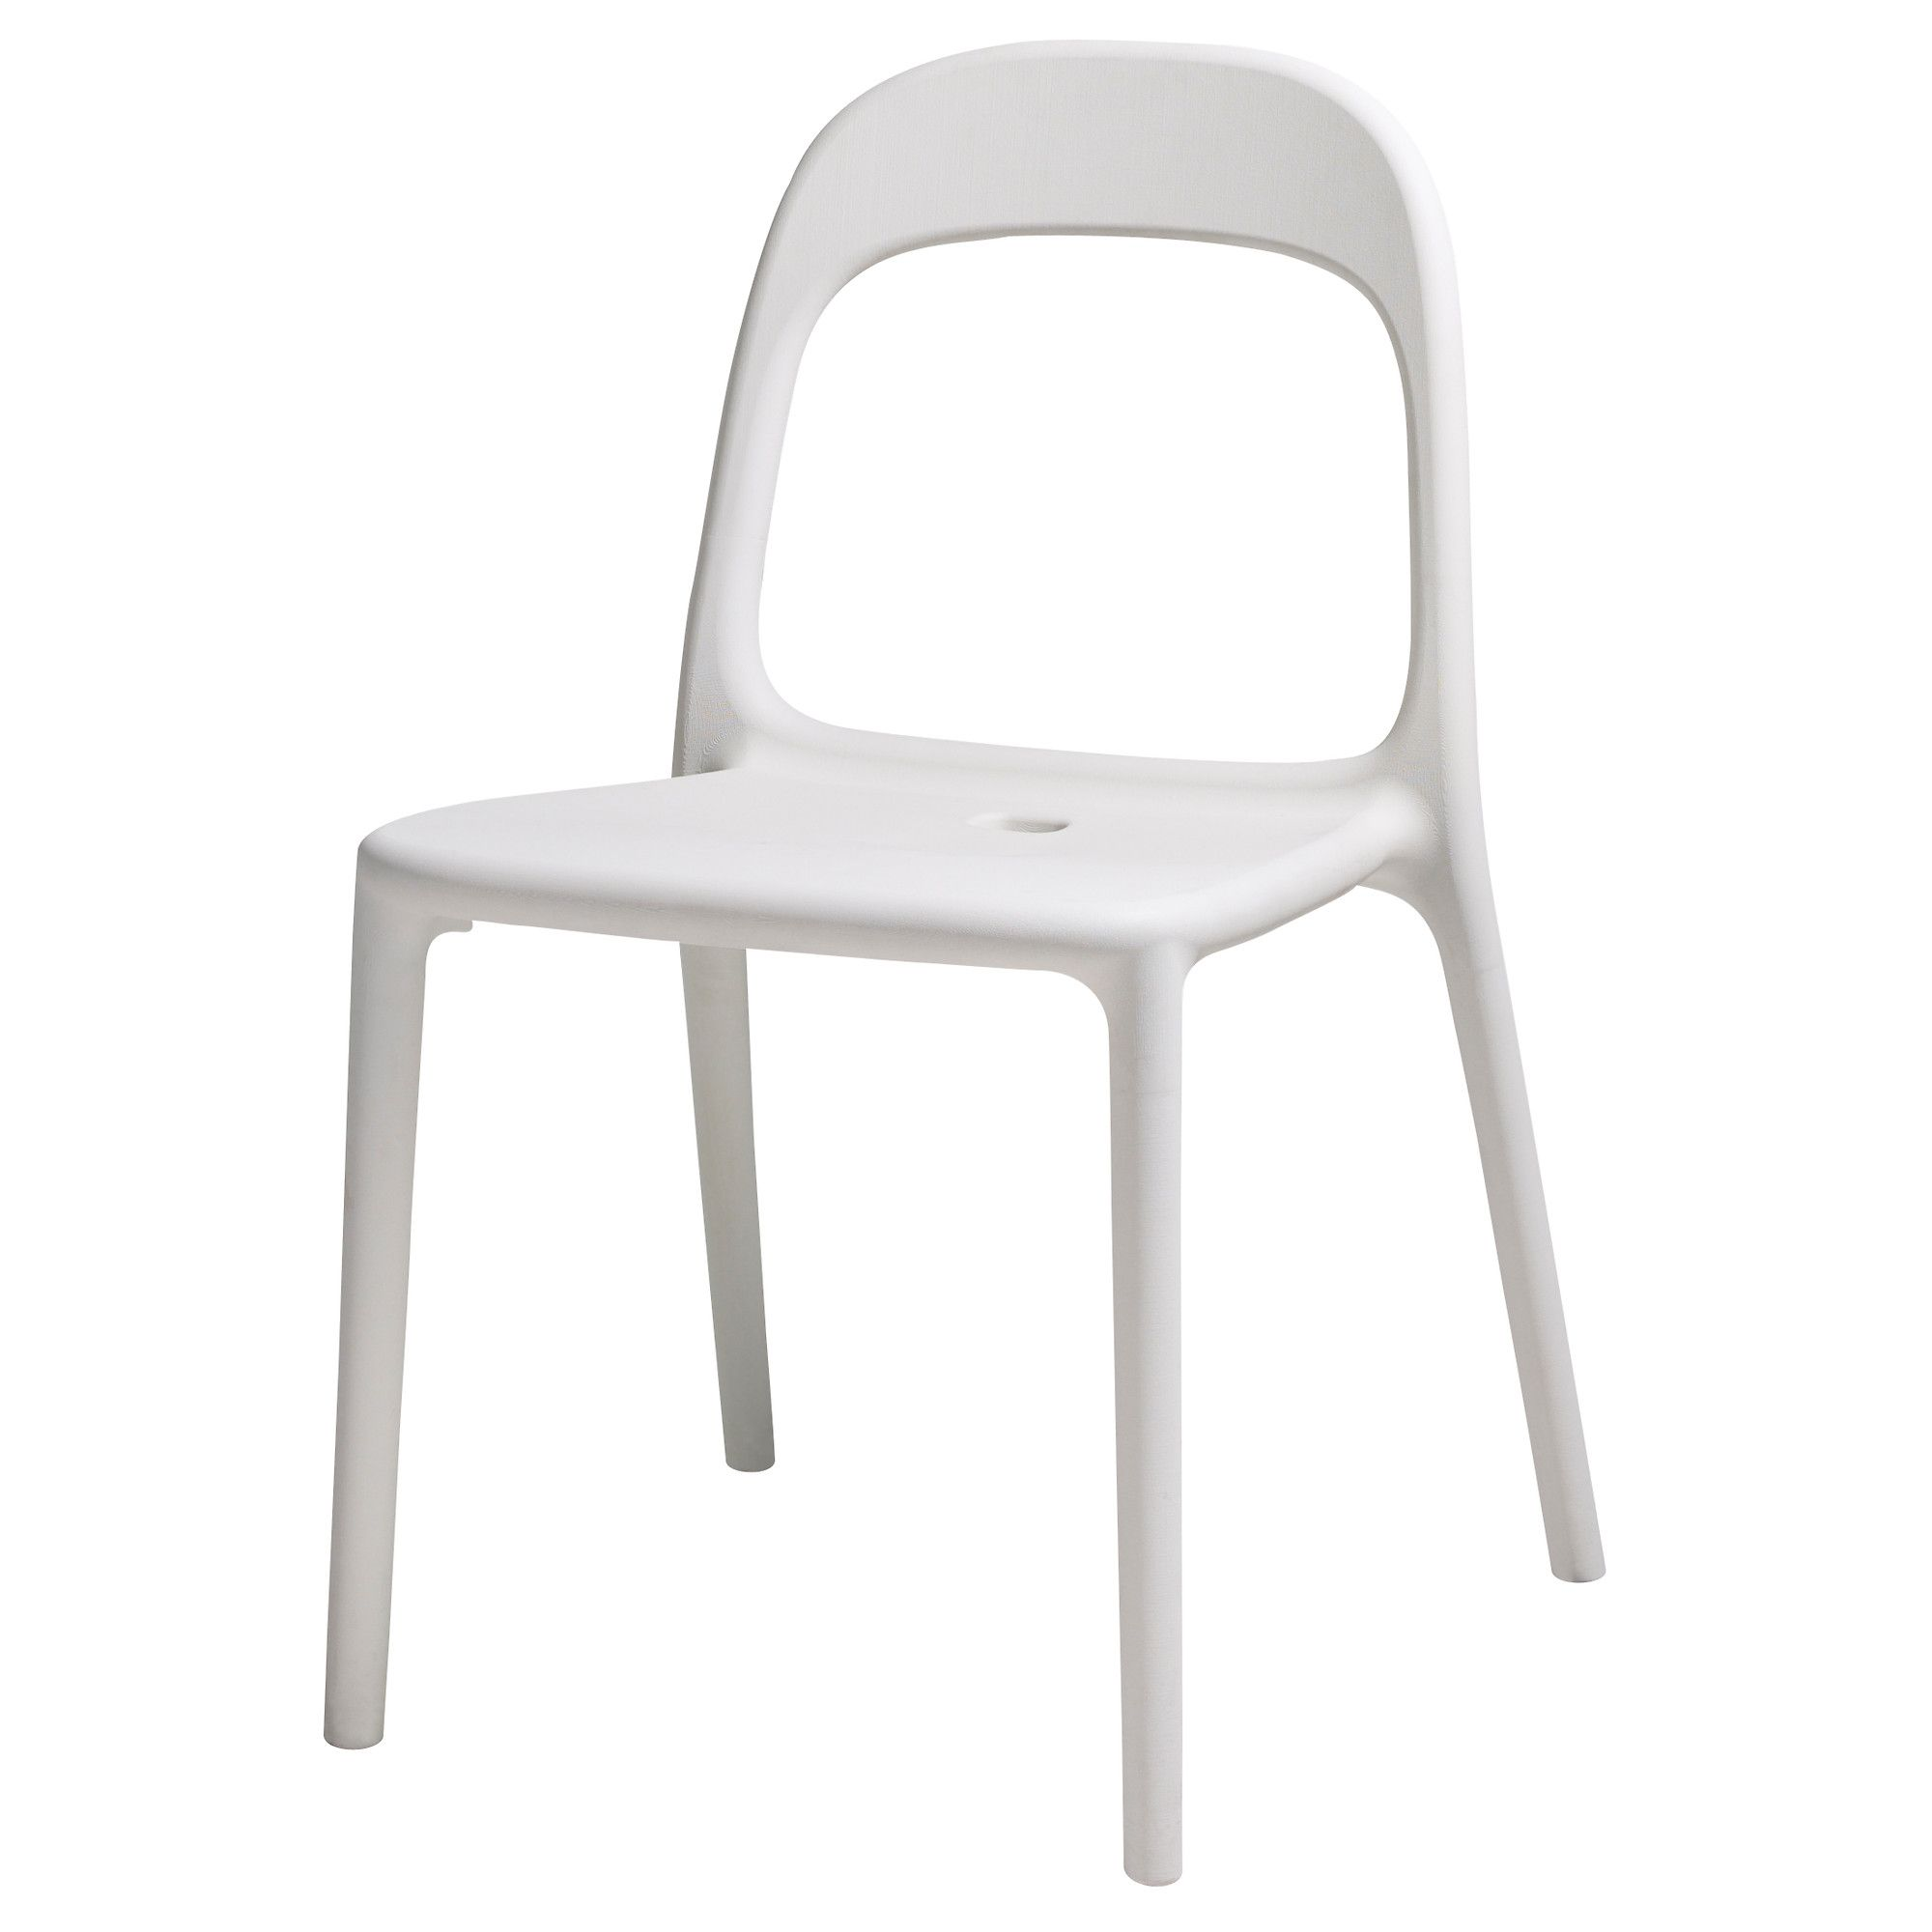 still love the urban chair at ikea could be great patio dining chairs the